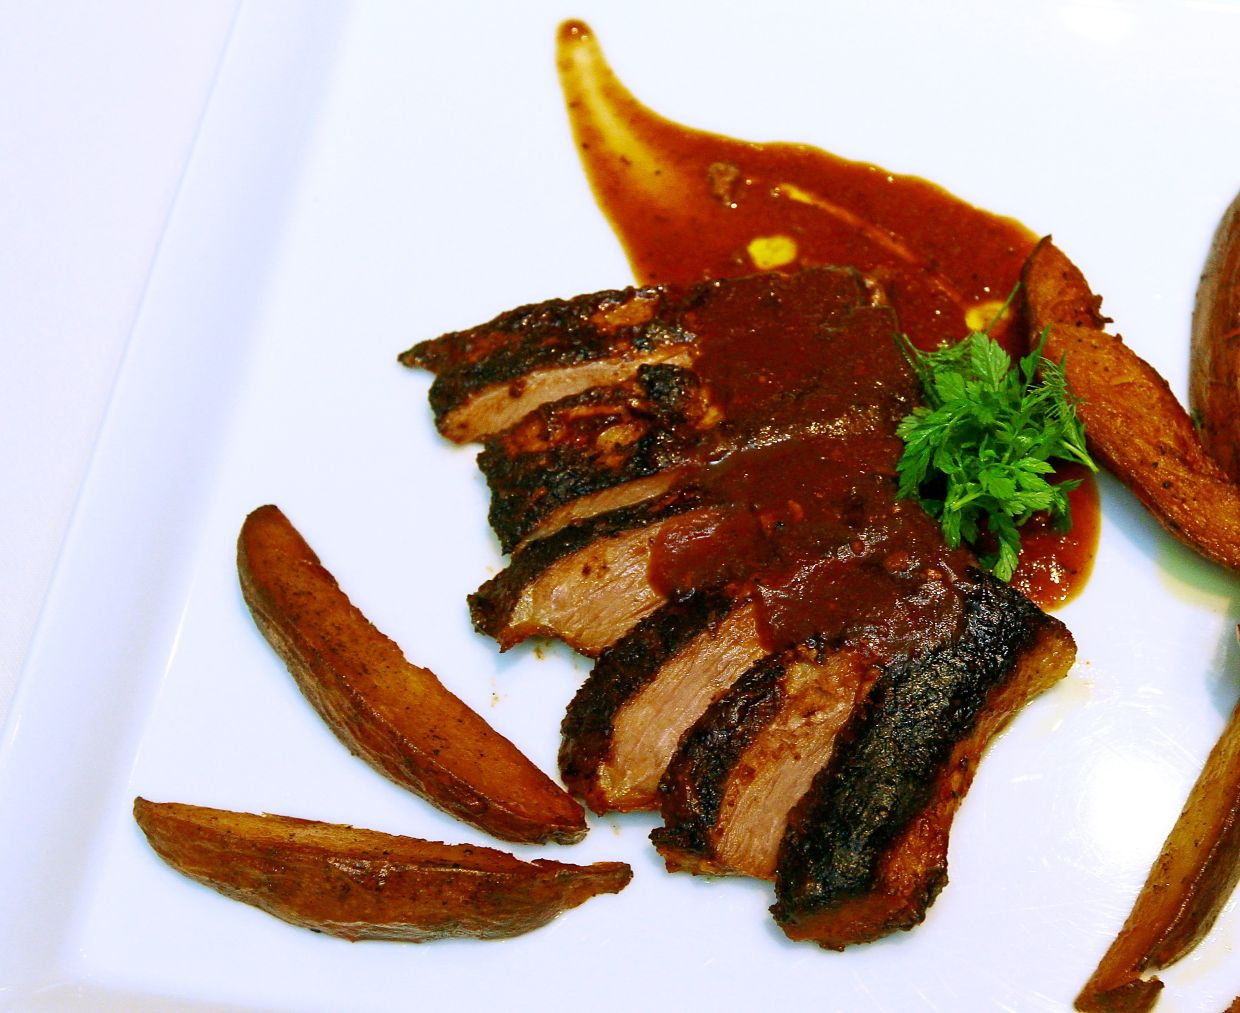 The matambre with balsamic glaze and potato wedges. — Photos: CHAN TAK KONG/The Star